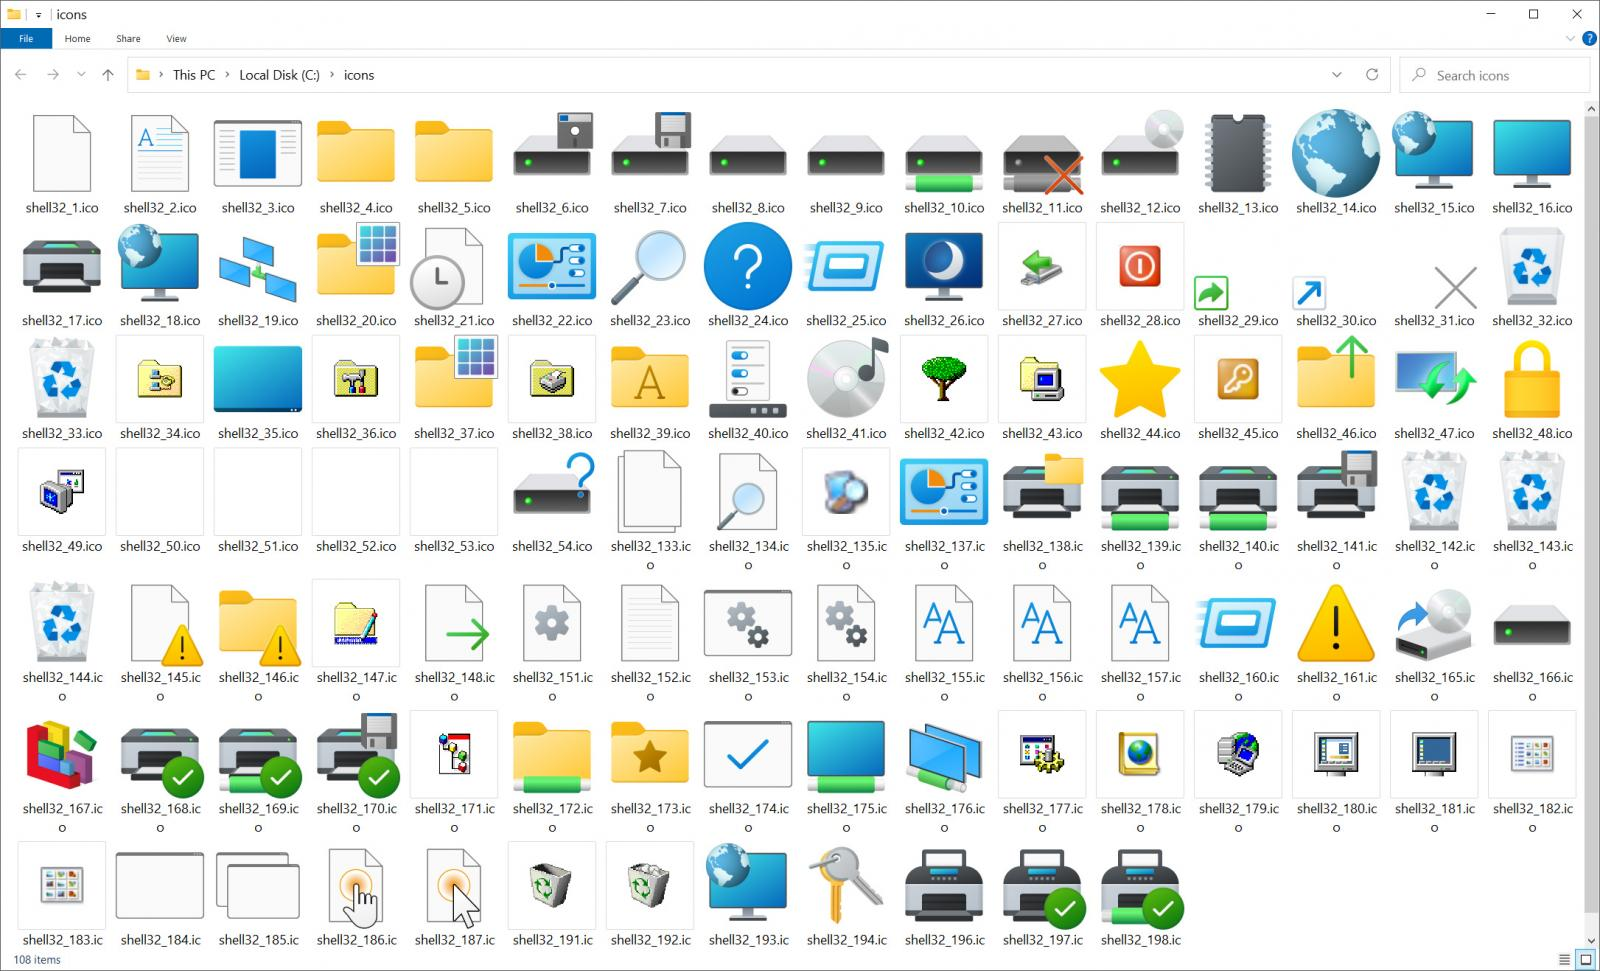 Upcoming Windows 10 Sun Valley icons